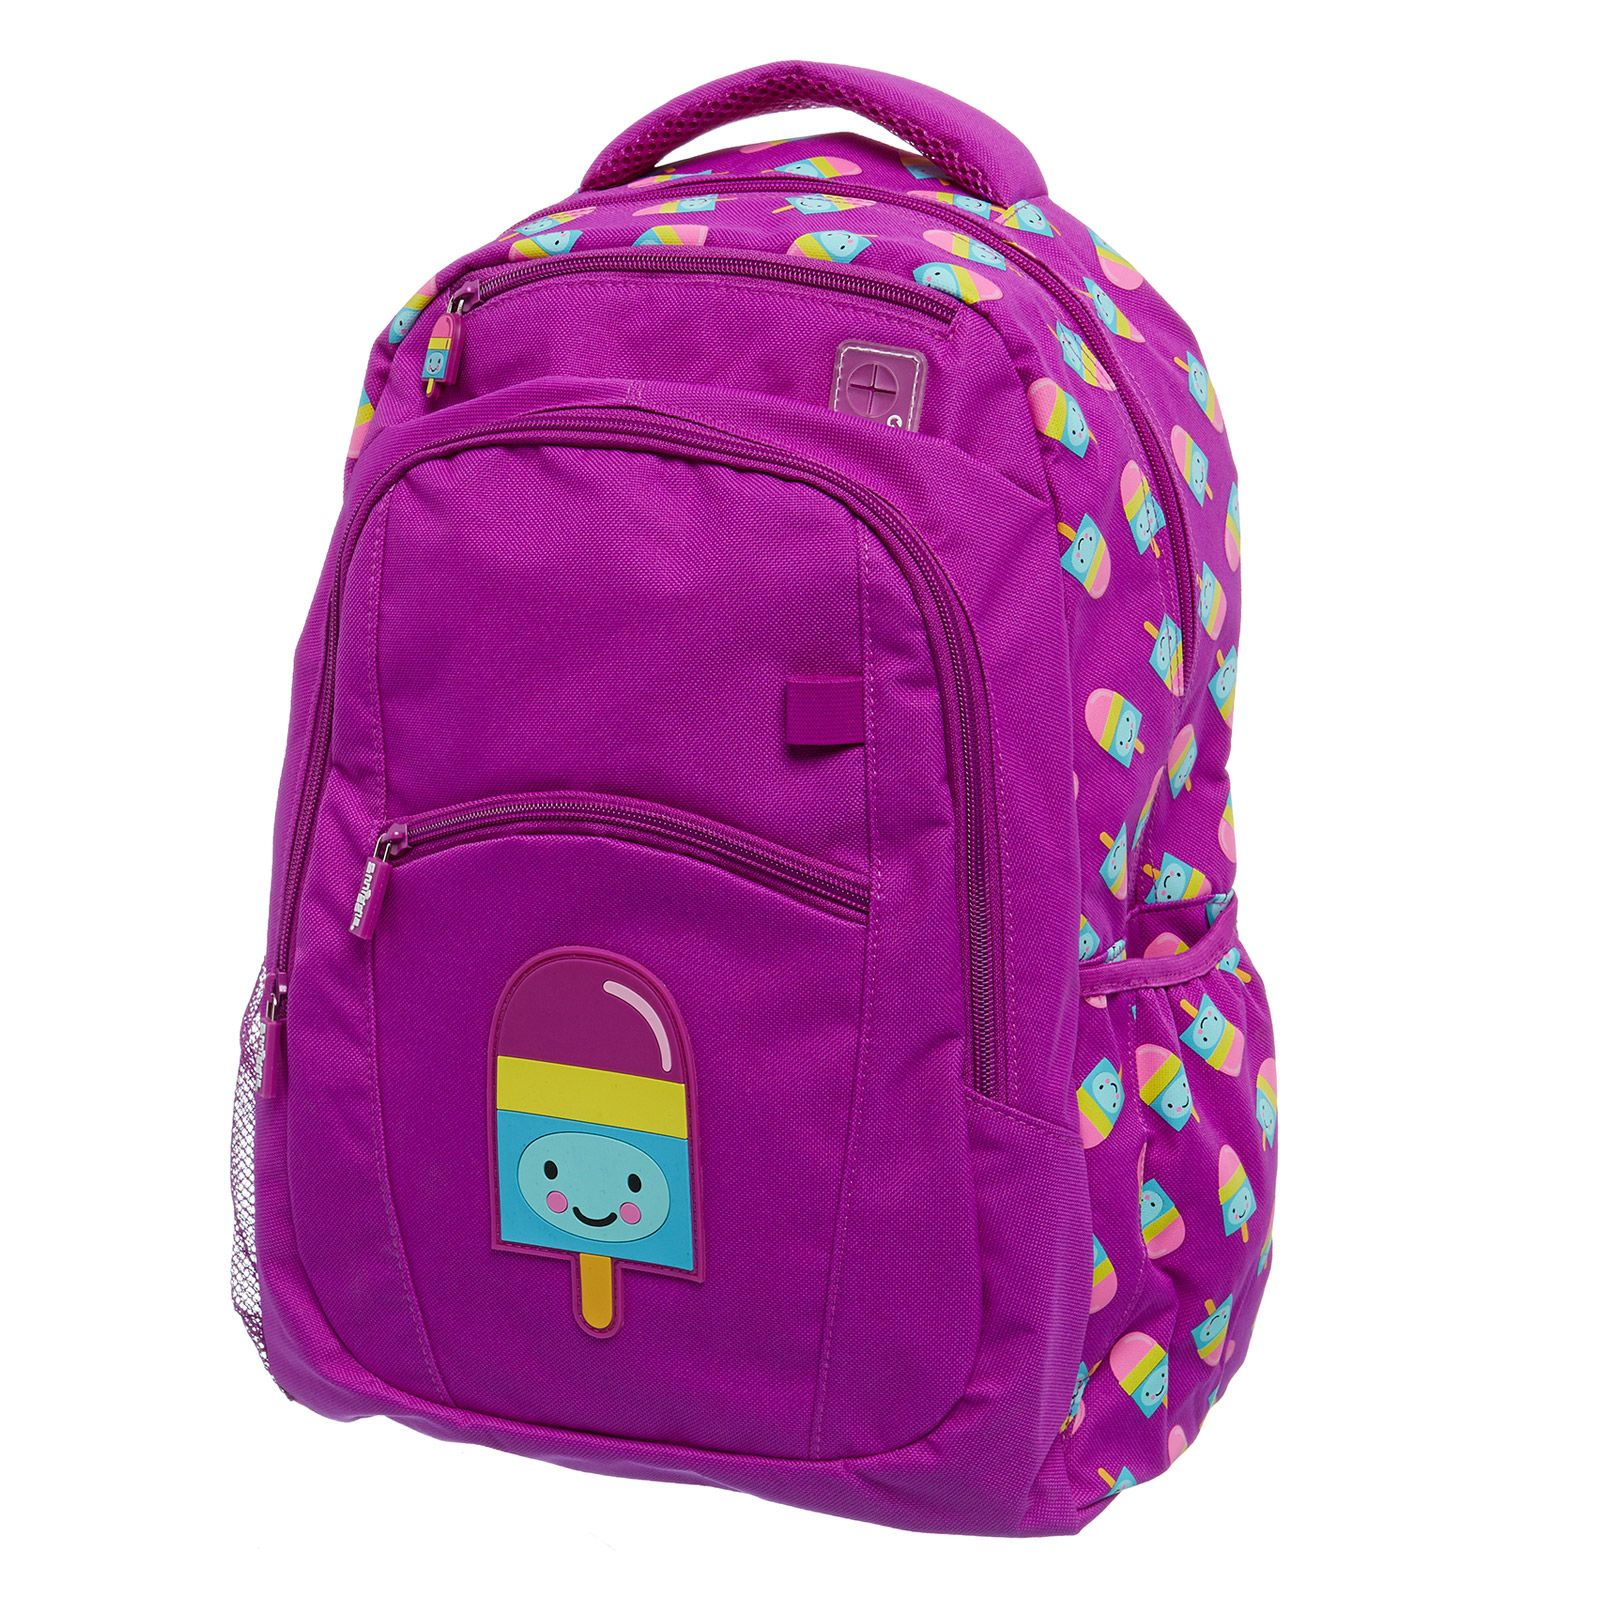 Smiggle bags for school - Smiggle Backpack 39 95